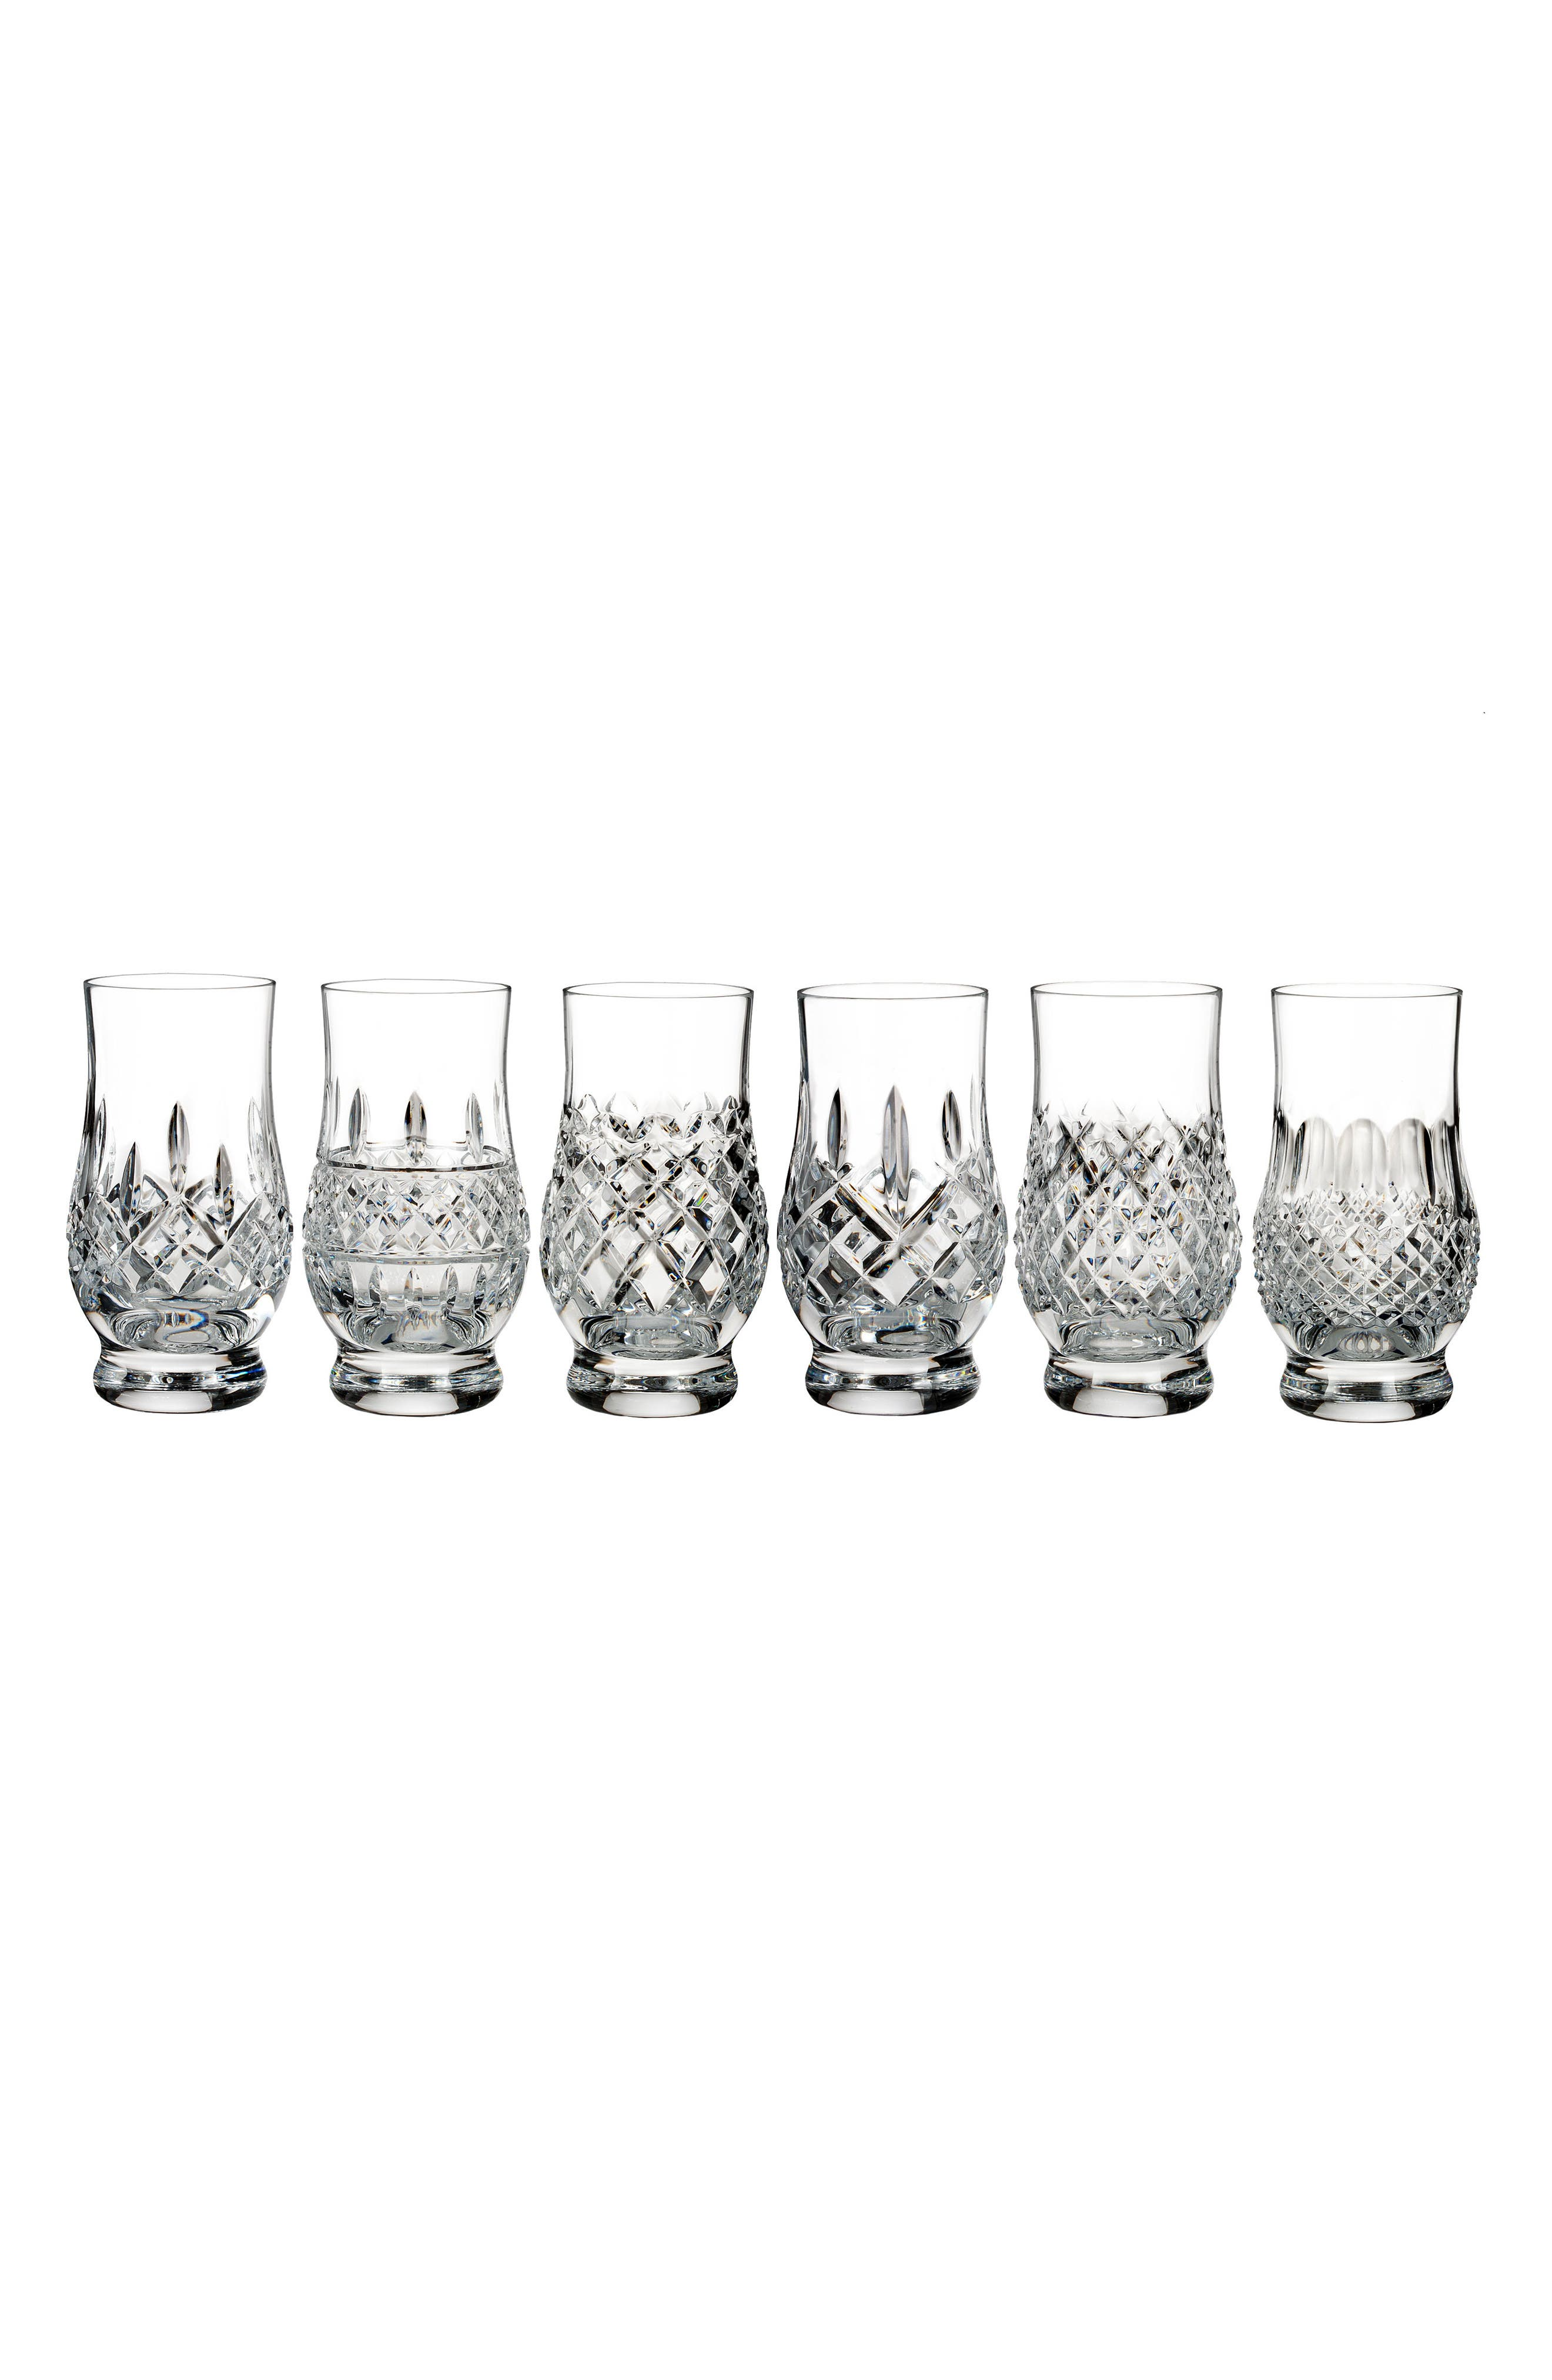 Main Image - Waterford Connoisseur Set of 6 Footed Lead Crystal Tumblers